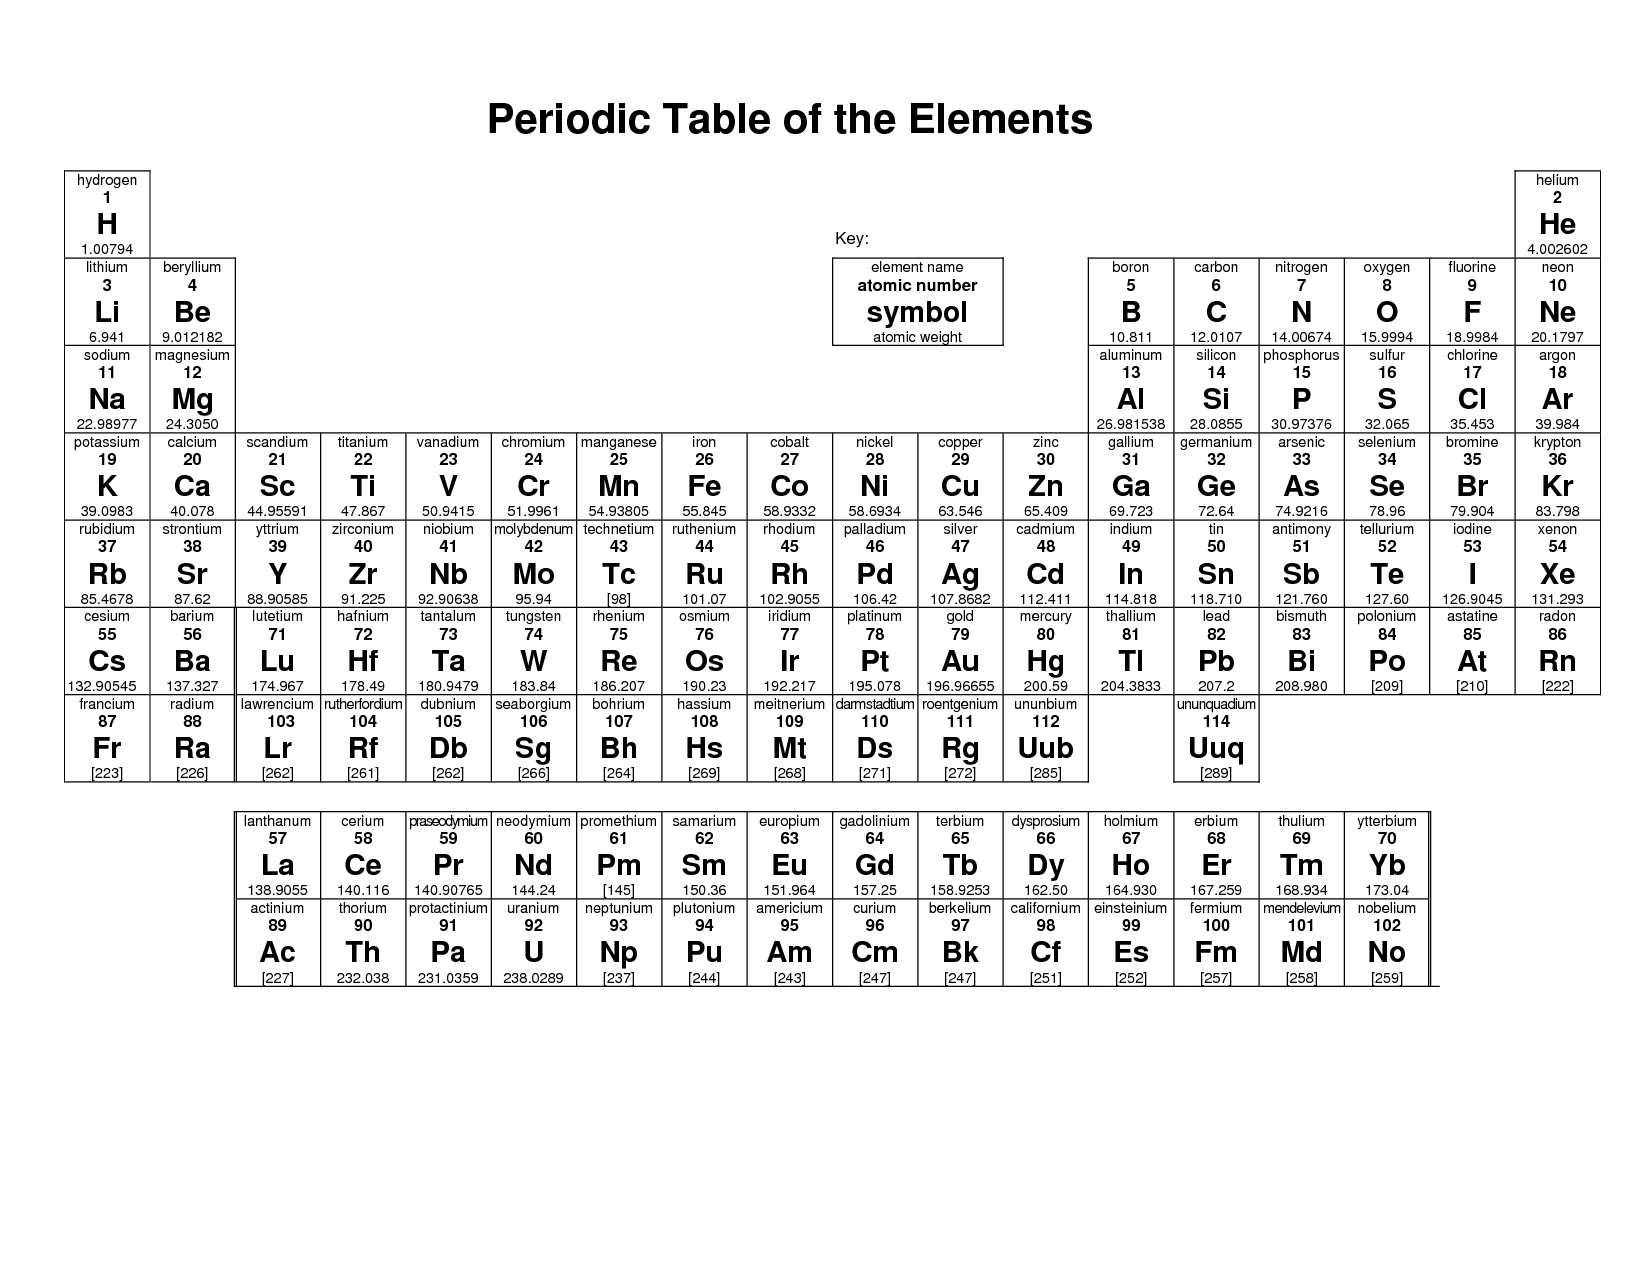 33 Awesome Printable Periodic Table Of Elements Images | Periodic - Free Printable Periodic Table Of Elements